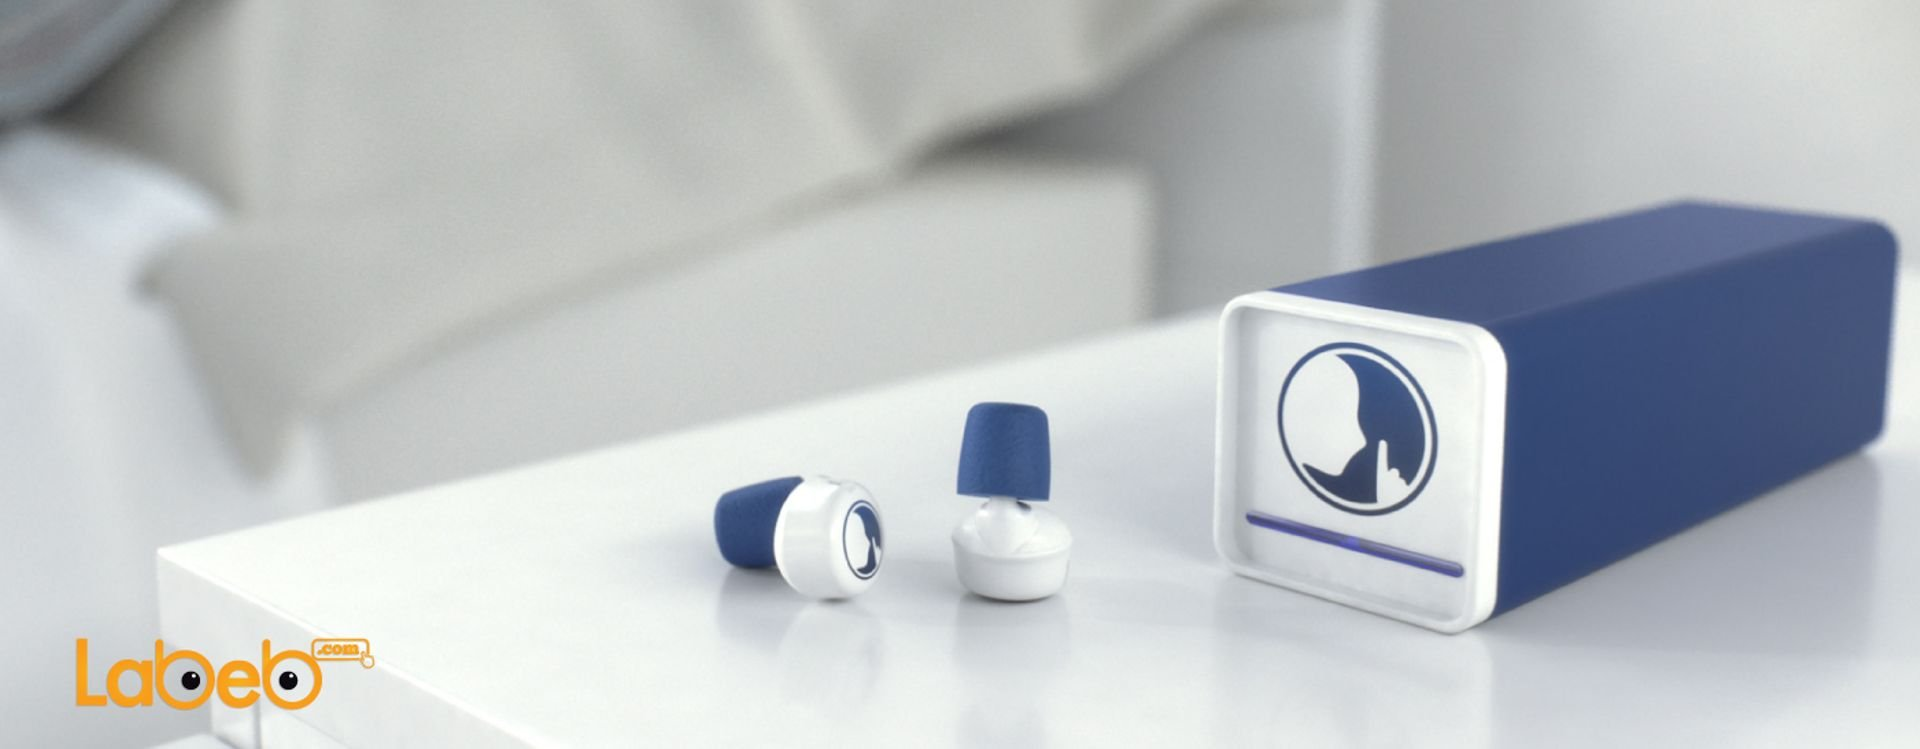 Hush earplugs, noise reduction and morning alarm.